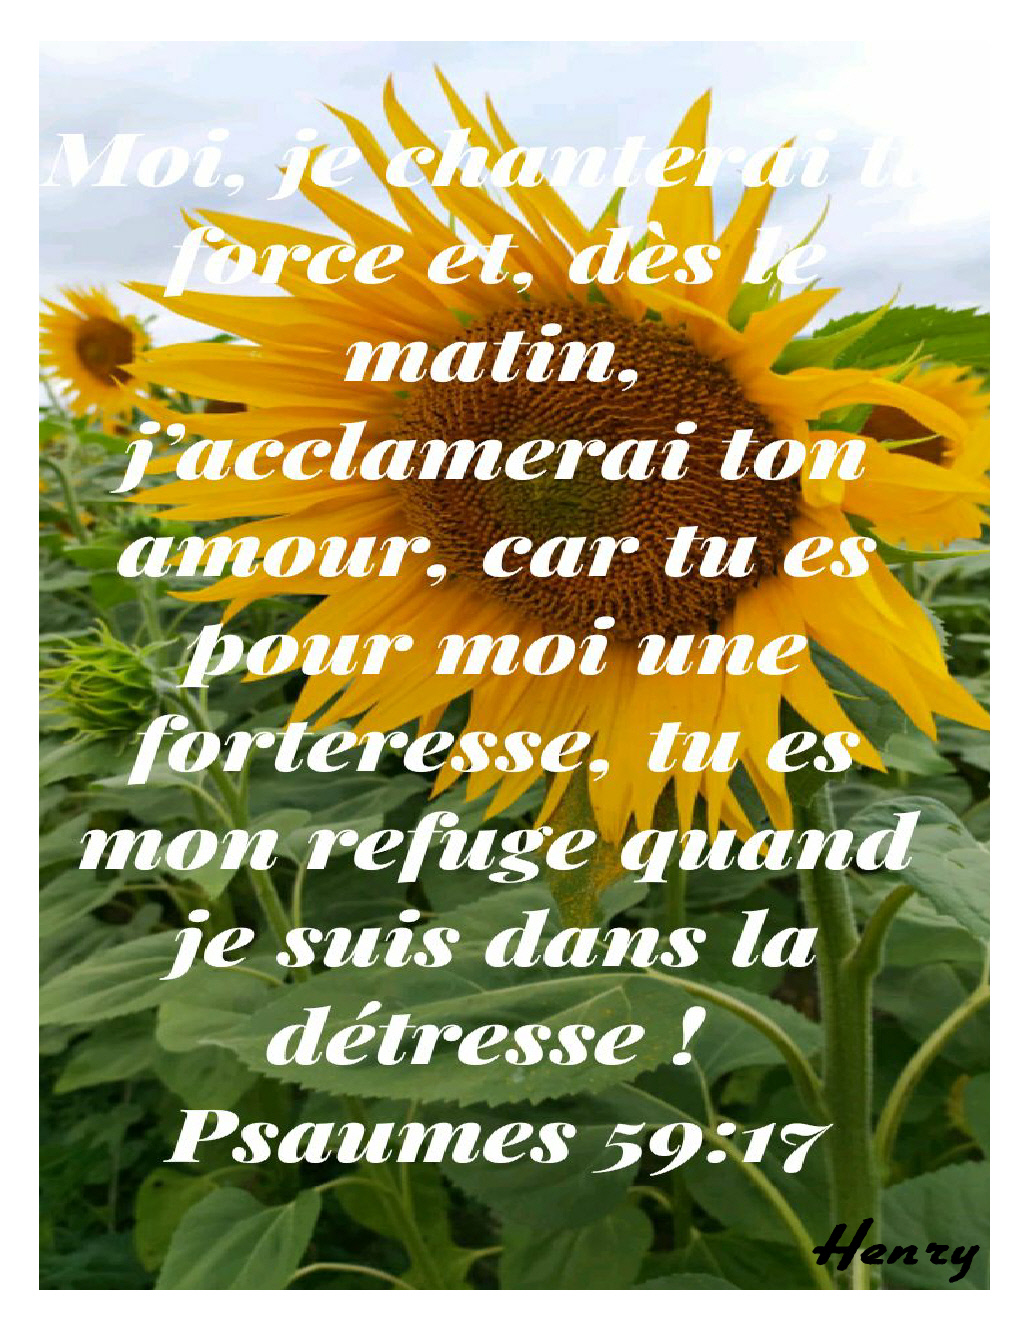 Psaumes 59.17